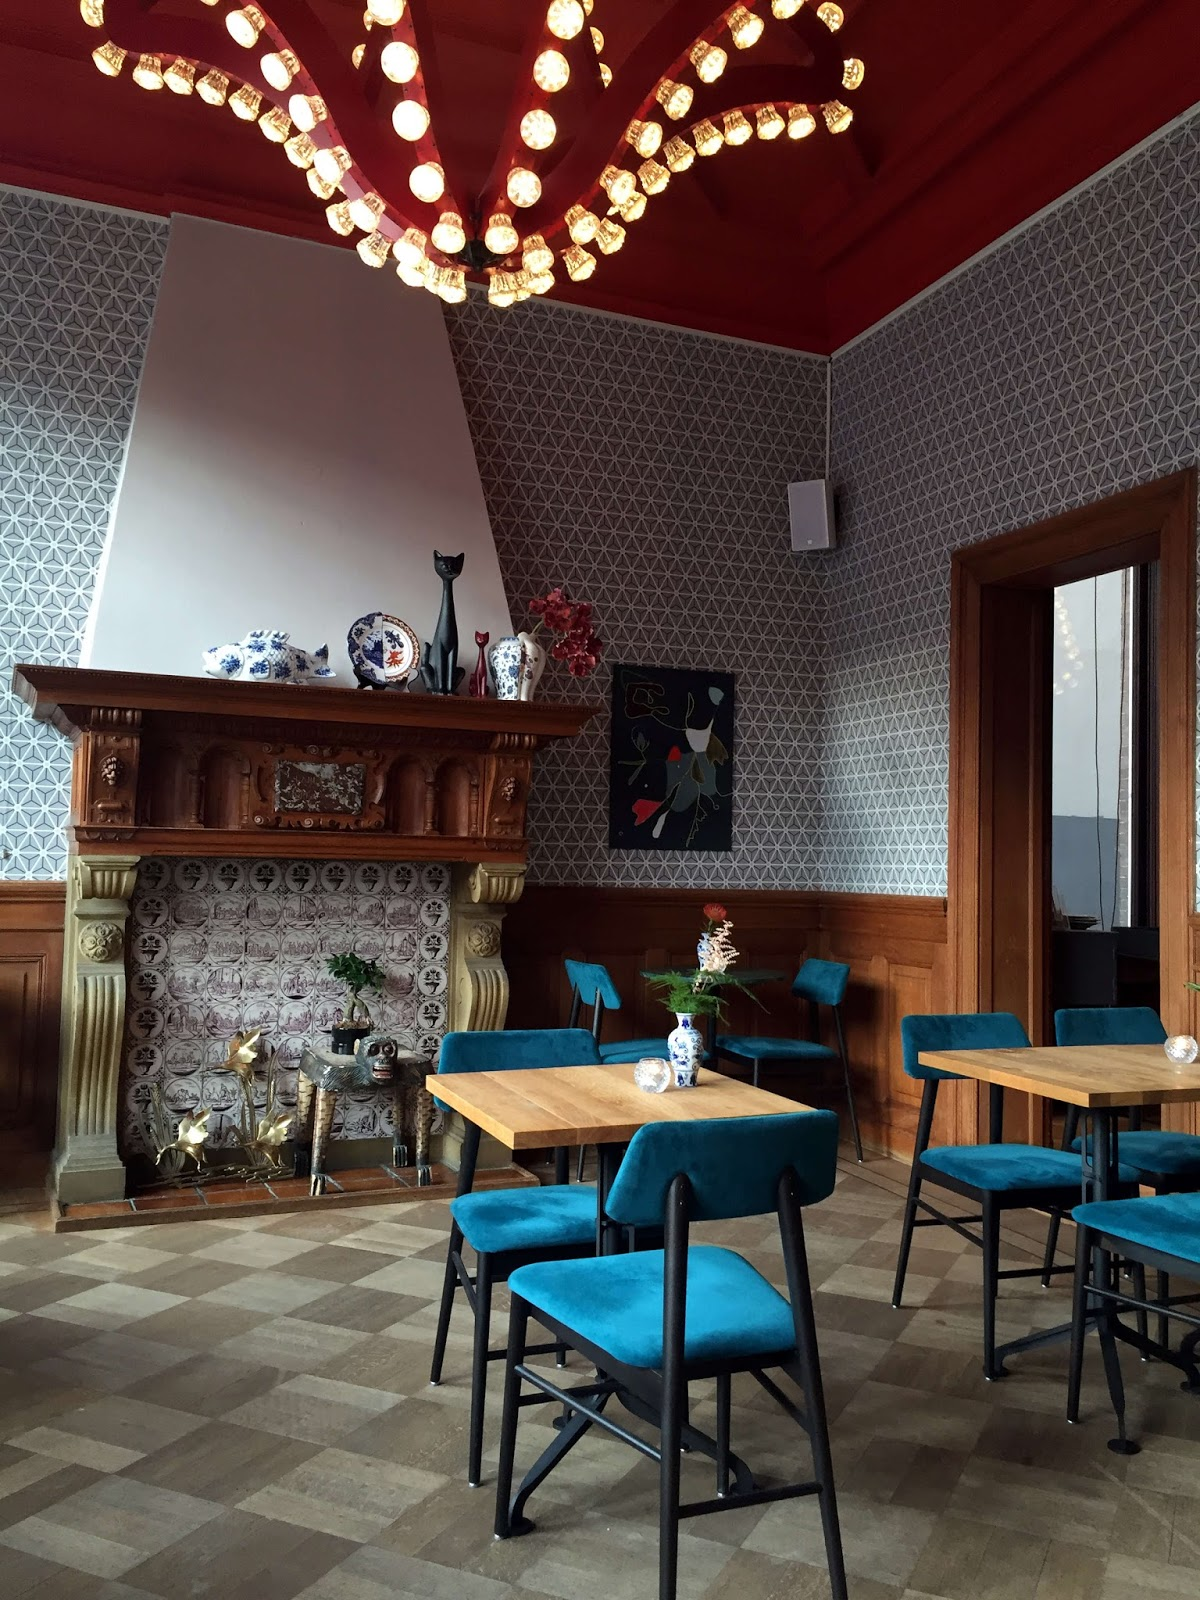 Hotspots Amsterdam Review Two New Thai Hotspots In Amsterdam Stitch And Bear